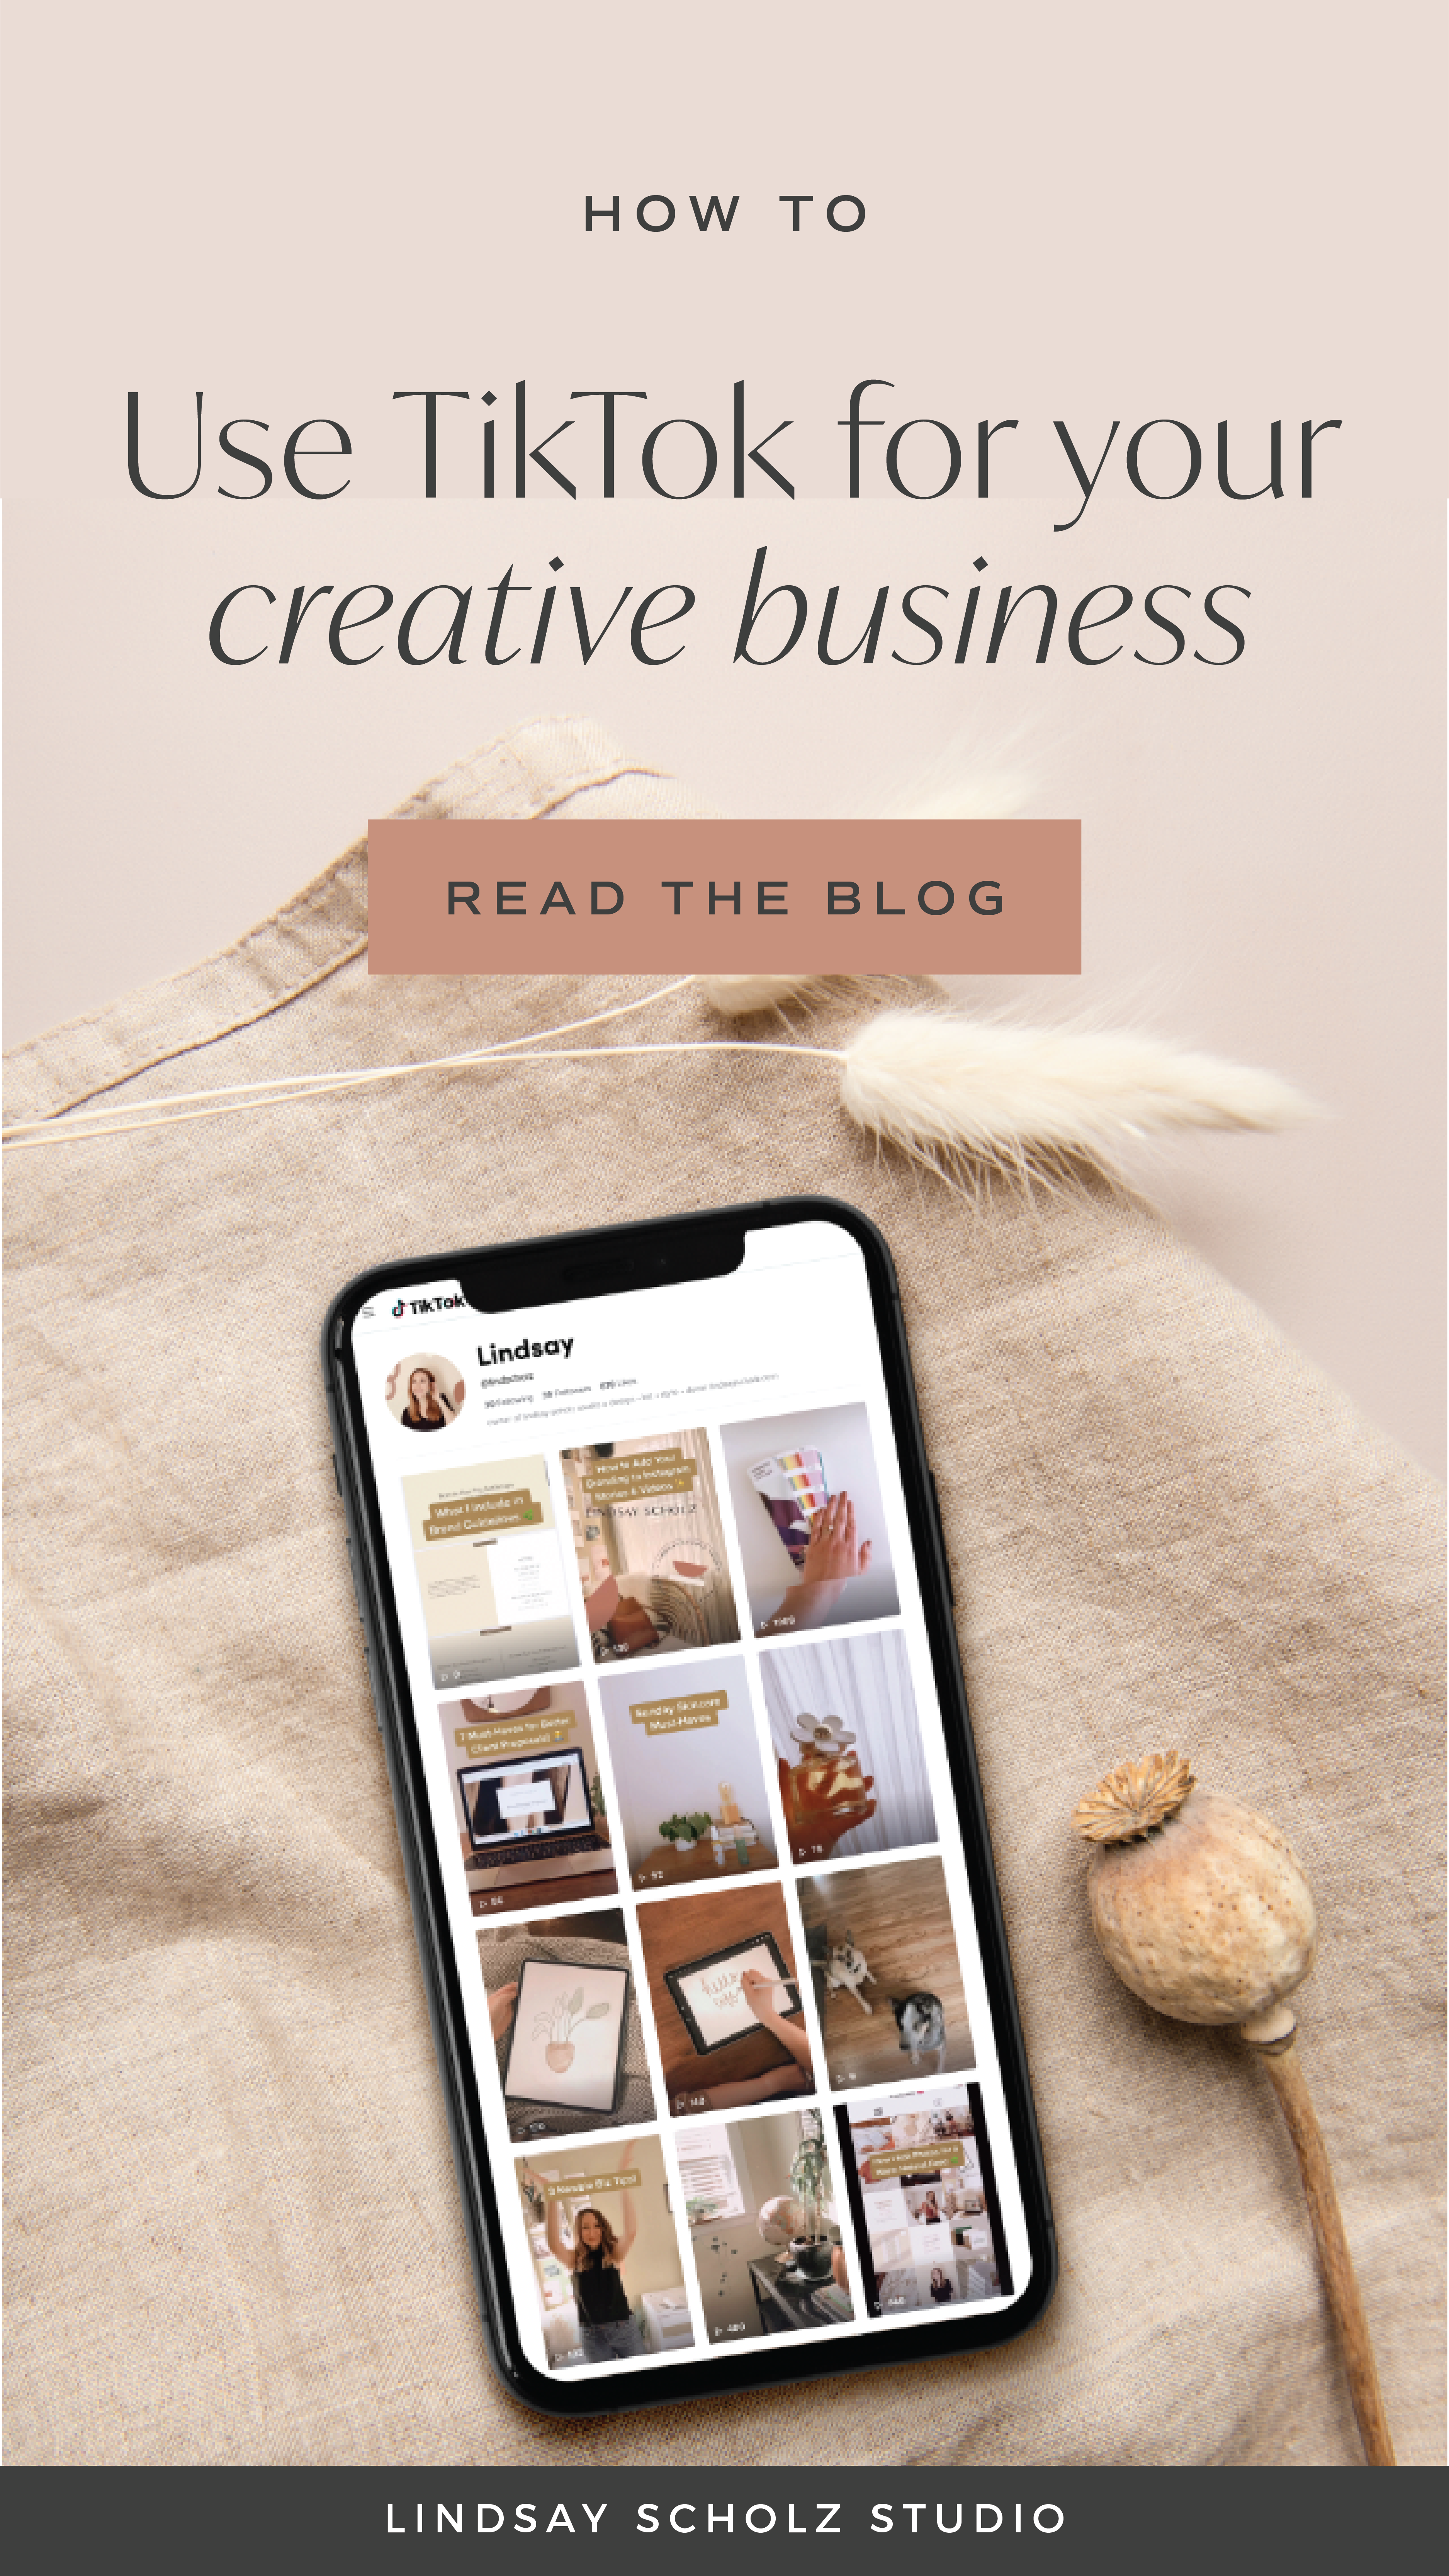 How To Use Tiktok For Business In 2020 Lindsay Scholz Studio Creative Studio For Woman Owned Businesses Creative Business Instagram Marketing Tips Instagram Marketing Strategy